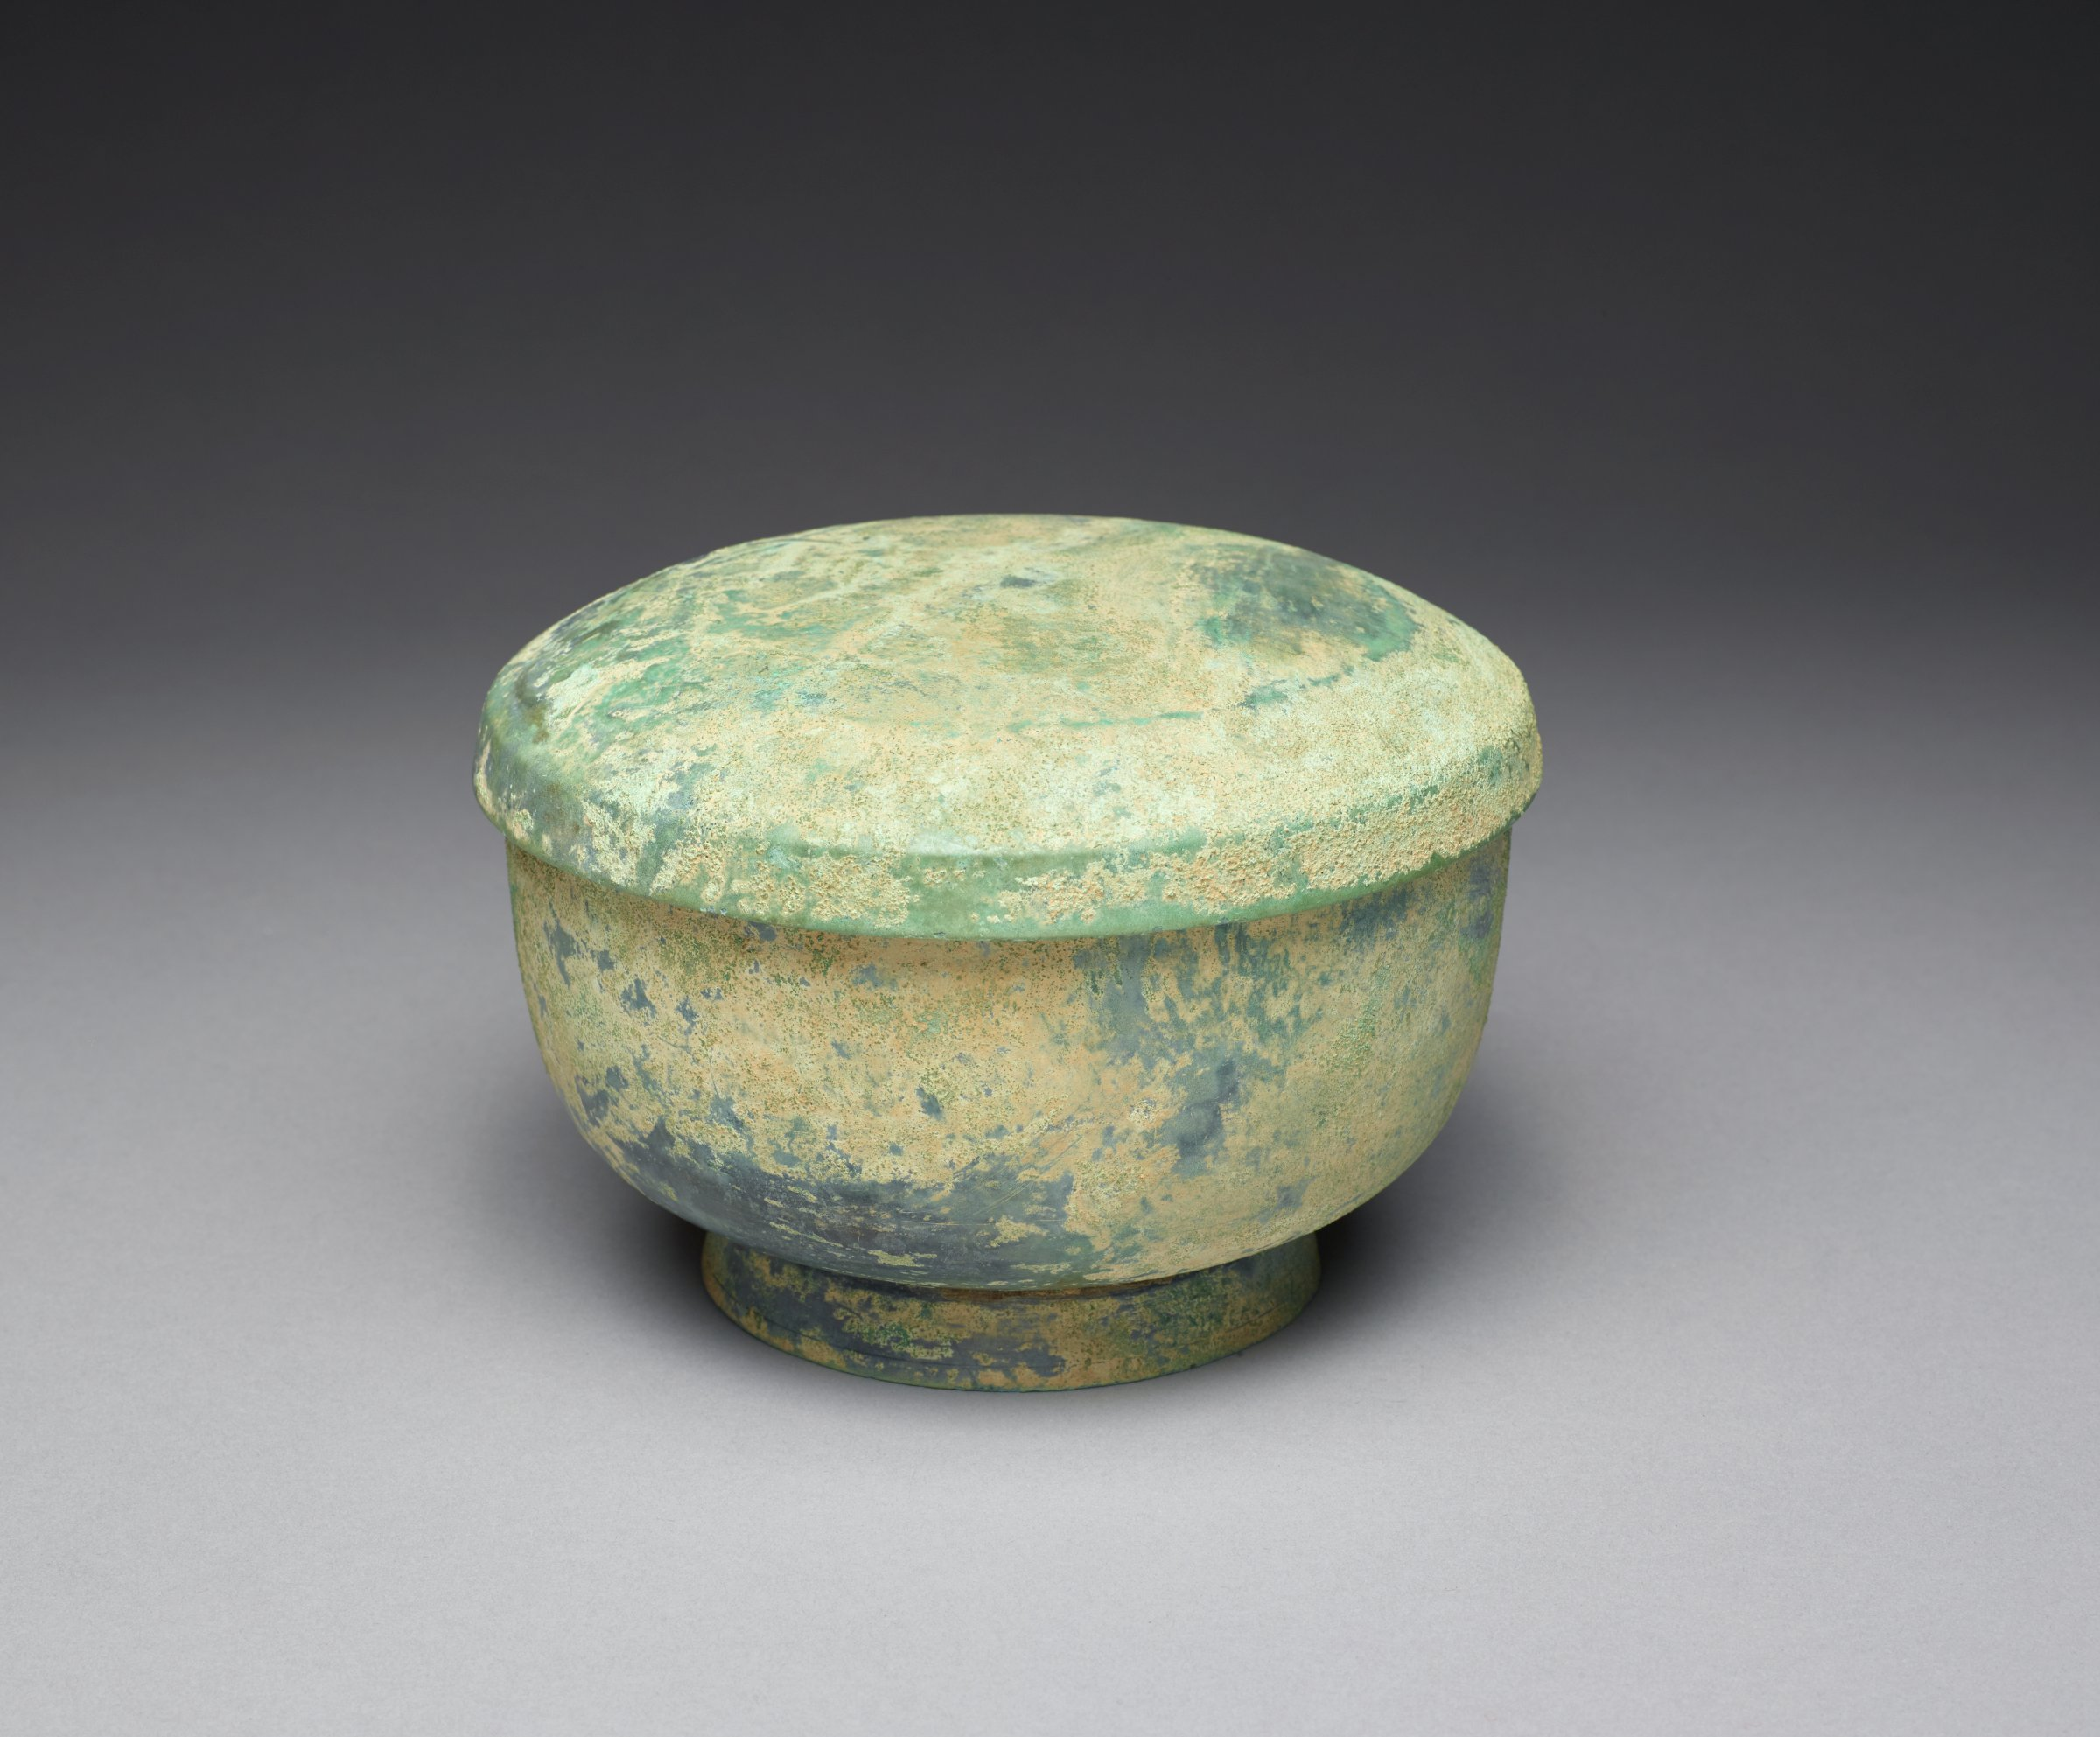 """Foot is riveted to bowl, lid separate, a good marriage.Lidded Footed BowlBowl: H: 4"""" DIA: 6.5""""; Lid: H: 1.25"""" DIA: 6 5/8"""""""